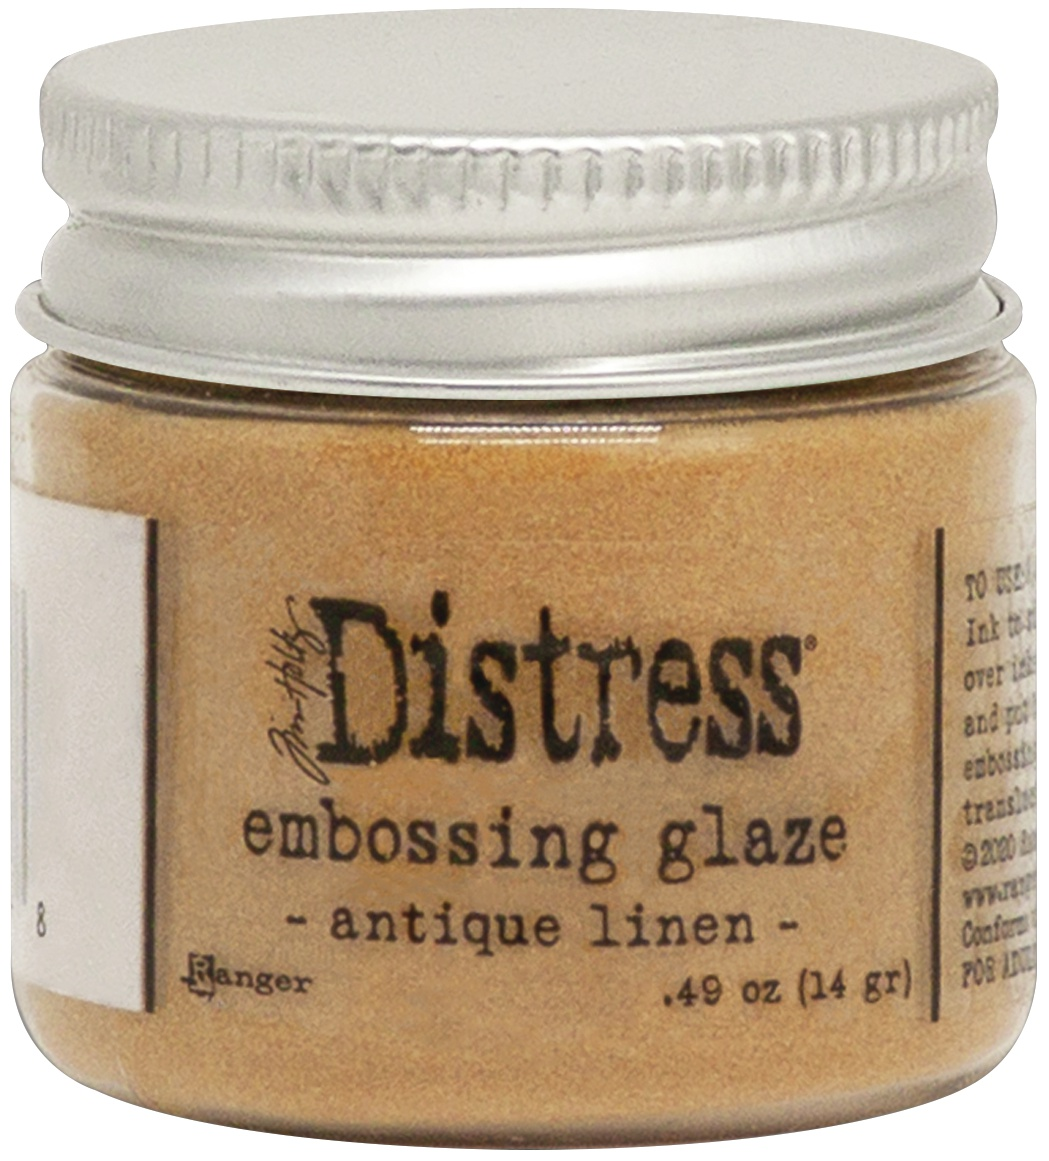 Tim Holtz Distress Embossing Glaze-Antique Linen